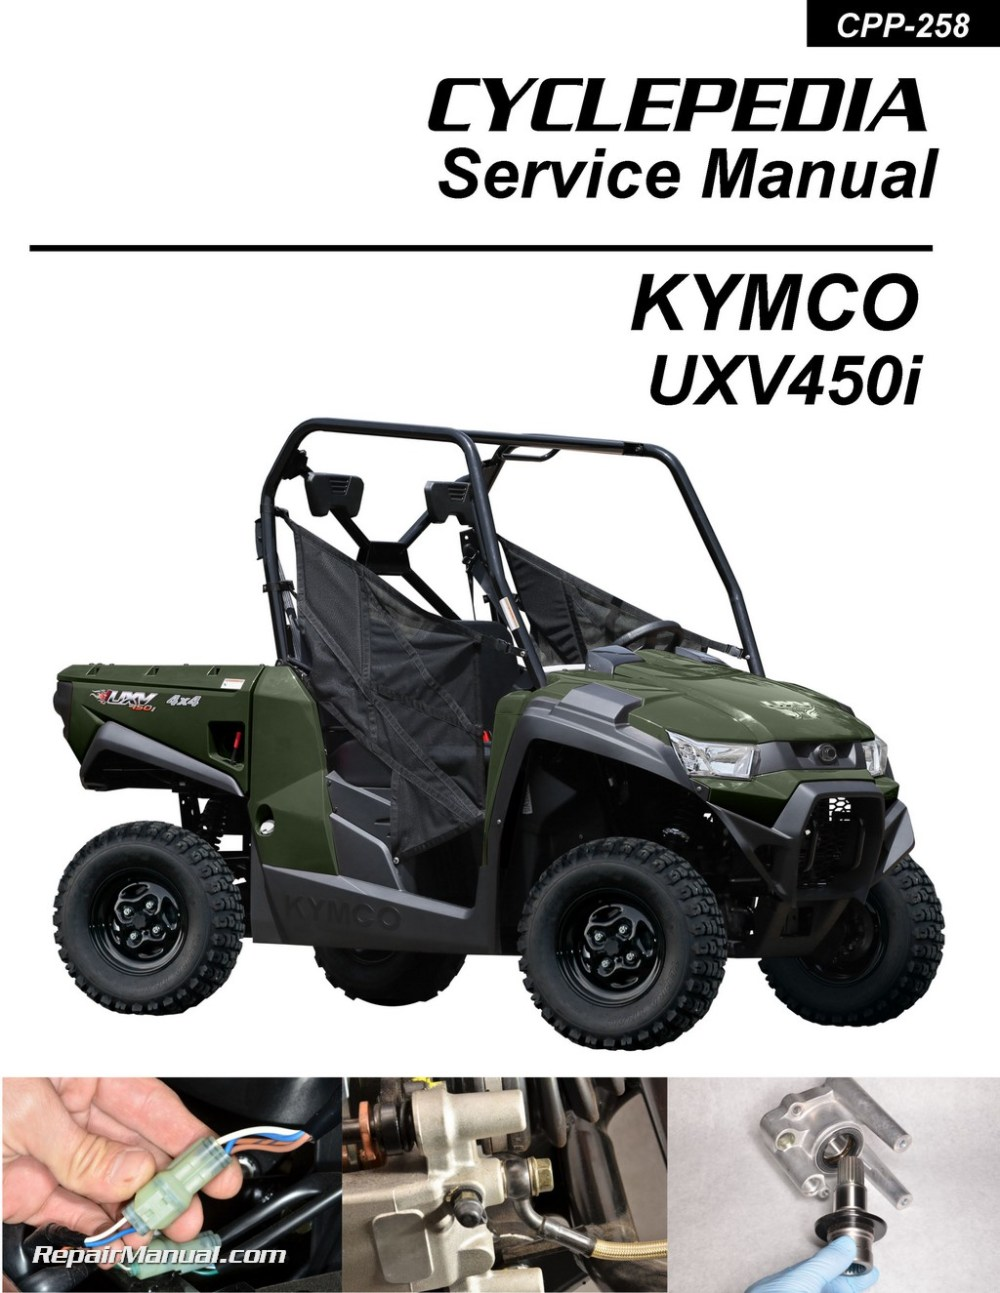 medium resolution of kymco uxv 450i 4x4 side x side printed service manual